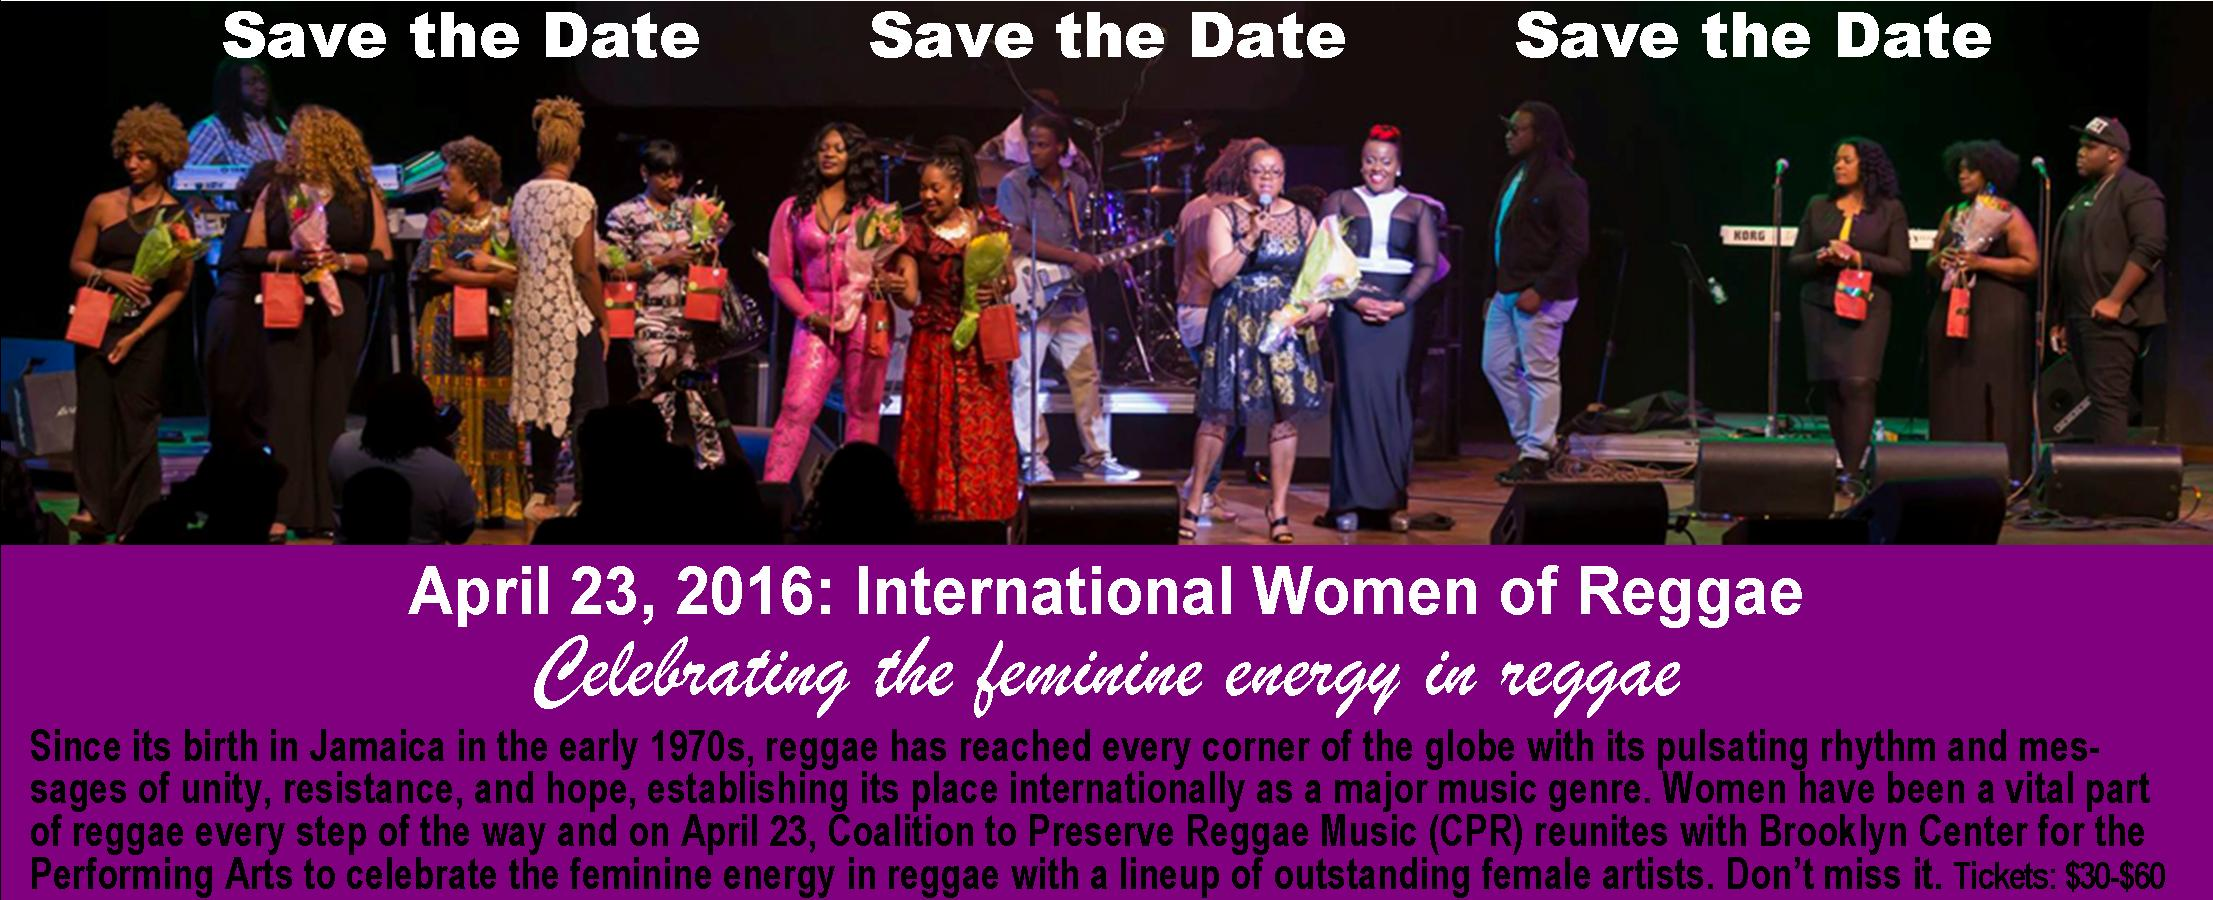 IWOR 2016 Save The Date